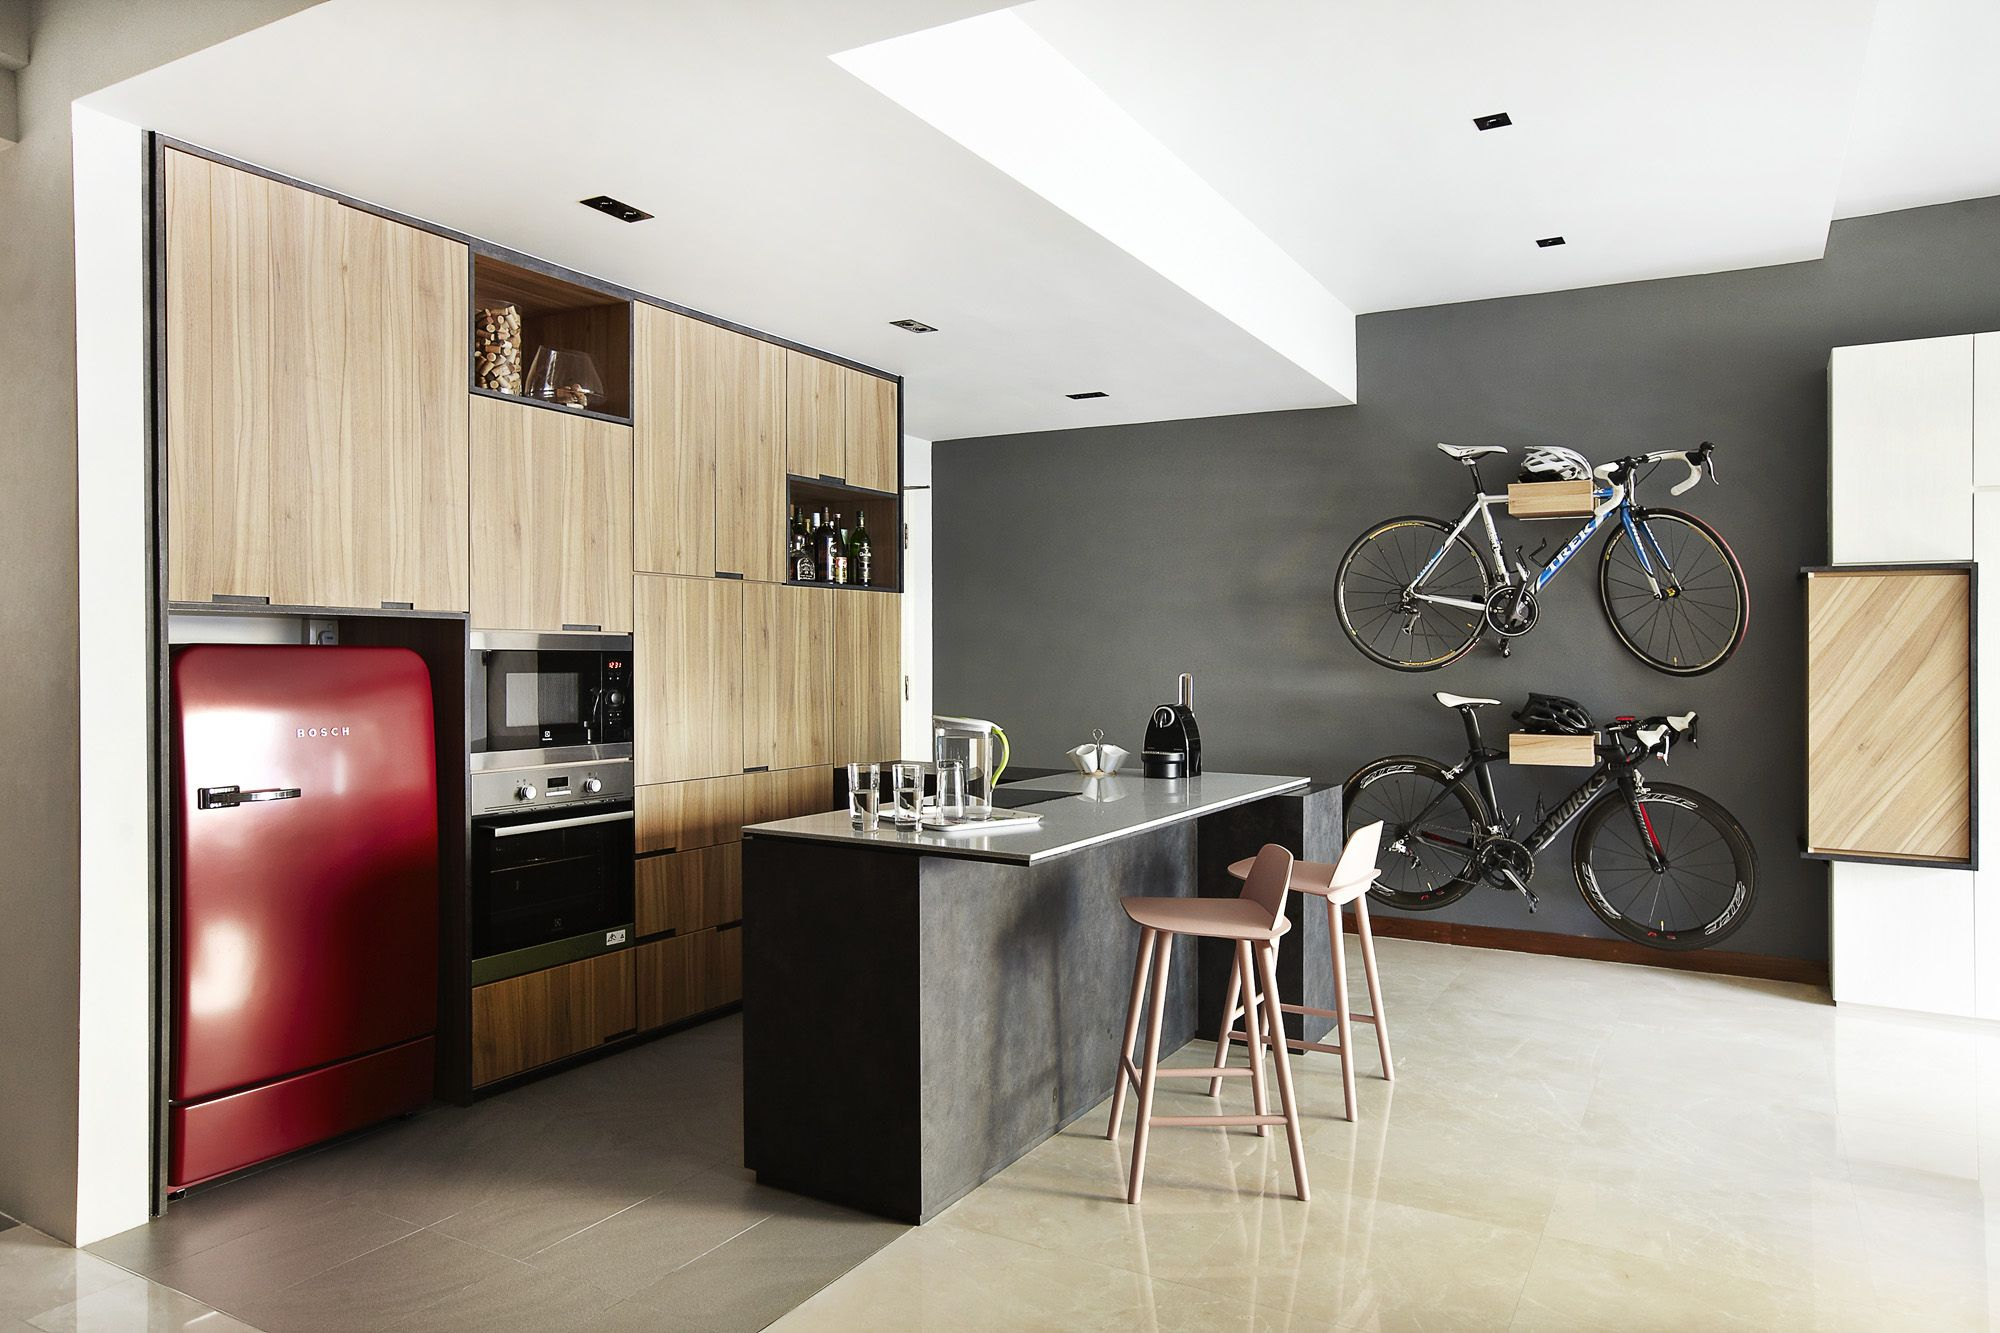 Kitchen Cabinet Price List Singapore Euro Asia Park Dry Kitchen Area Home And Decor Singapore